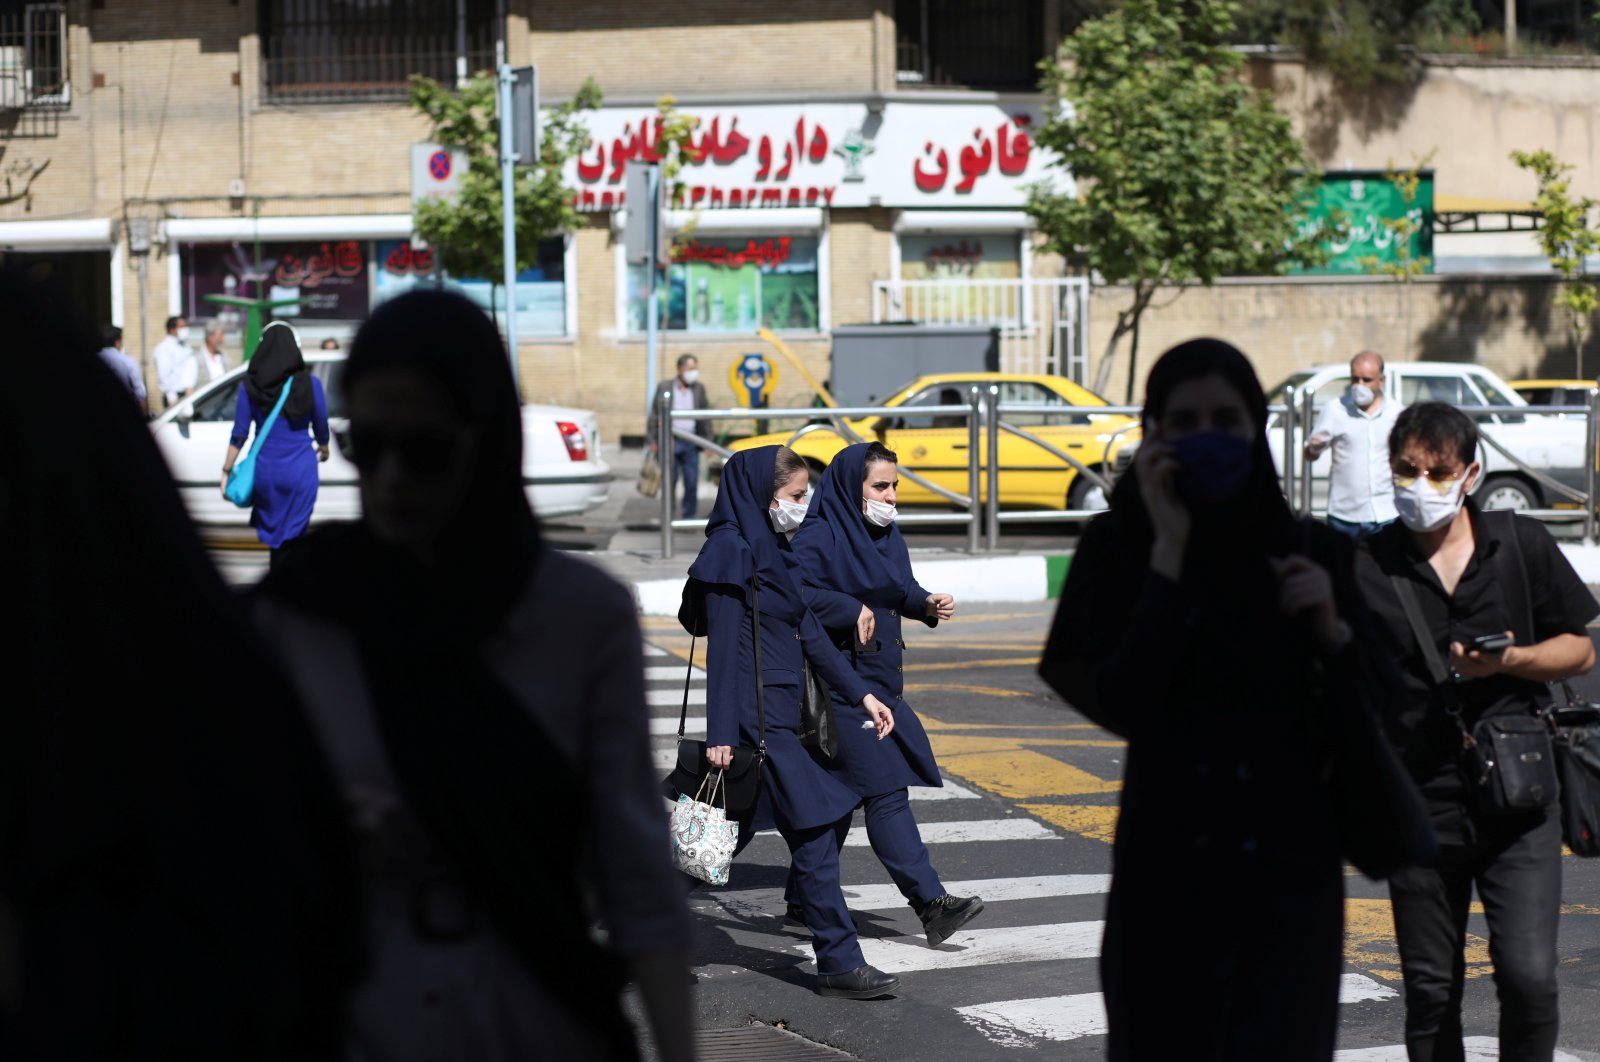 Iranians wear protective face masks and gloves, following the outbreak of the coronavirus disease (COVID-19), as they walk in Vali-E-Asr street, in Tehran, Iran, May 12, 2020. (Reuters Photo)